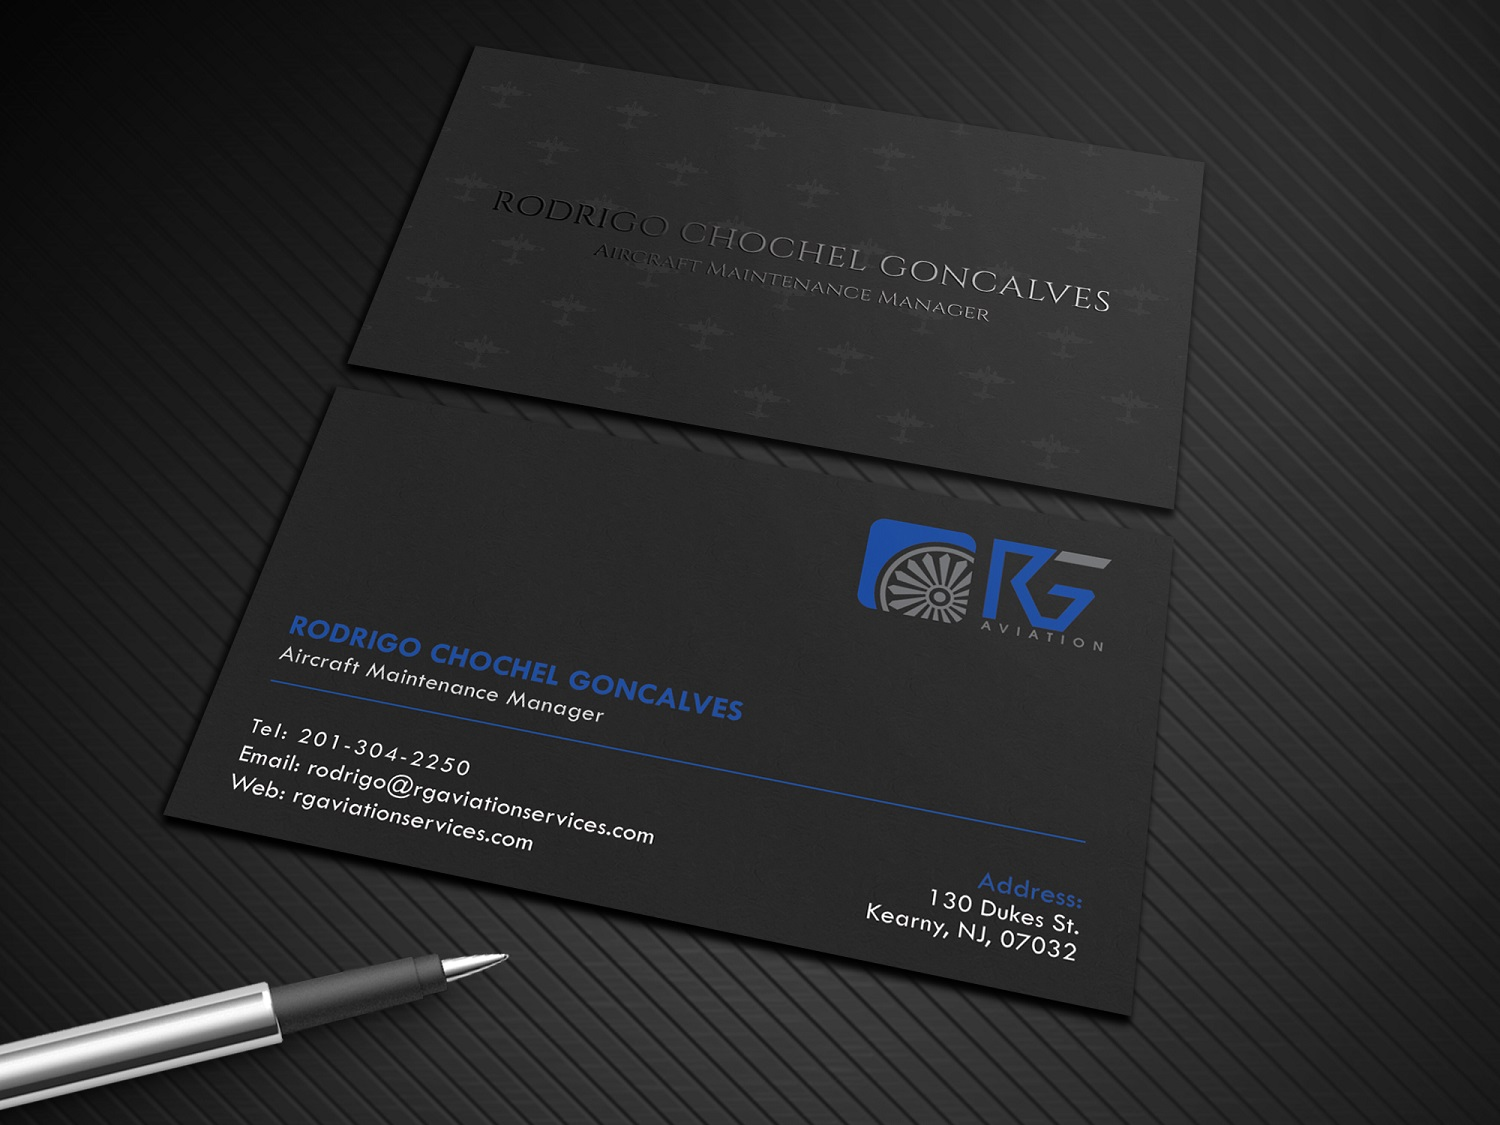 213 elegant business card designs aviation business card design business card design by graphic flame for west hudson construction llc design 15222583 colourmoves